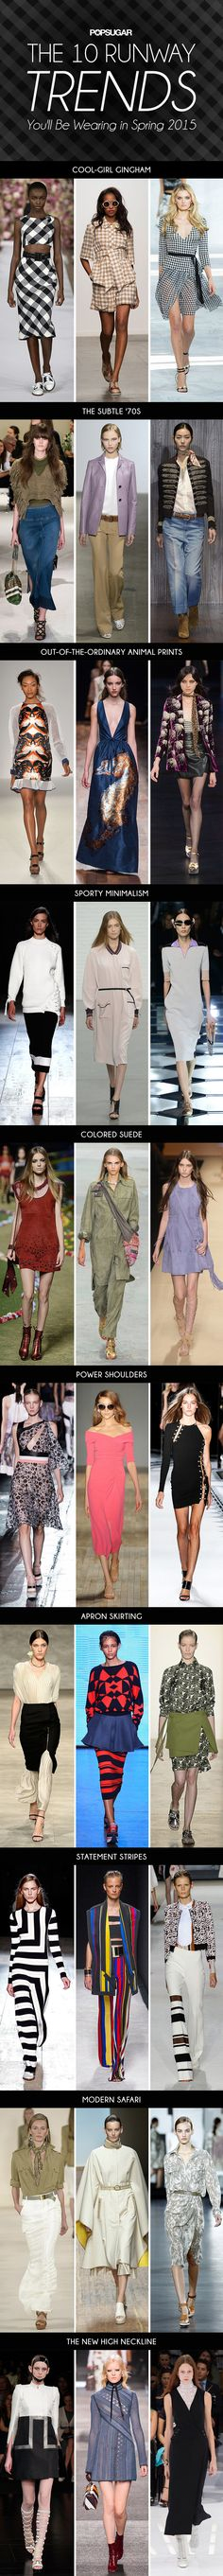 The 10 Runway Trends You'll Be Wearing This Spring